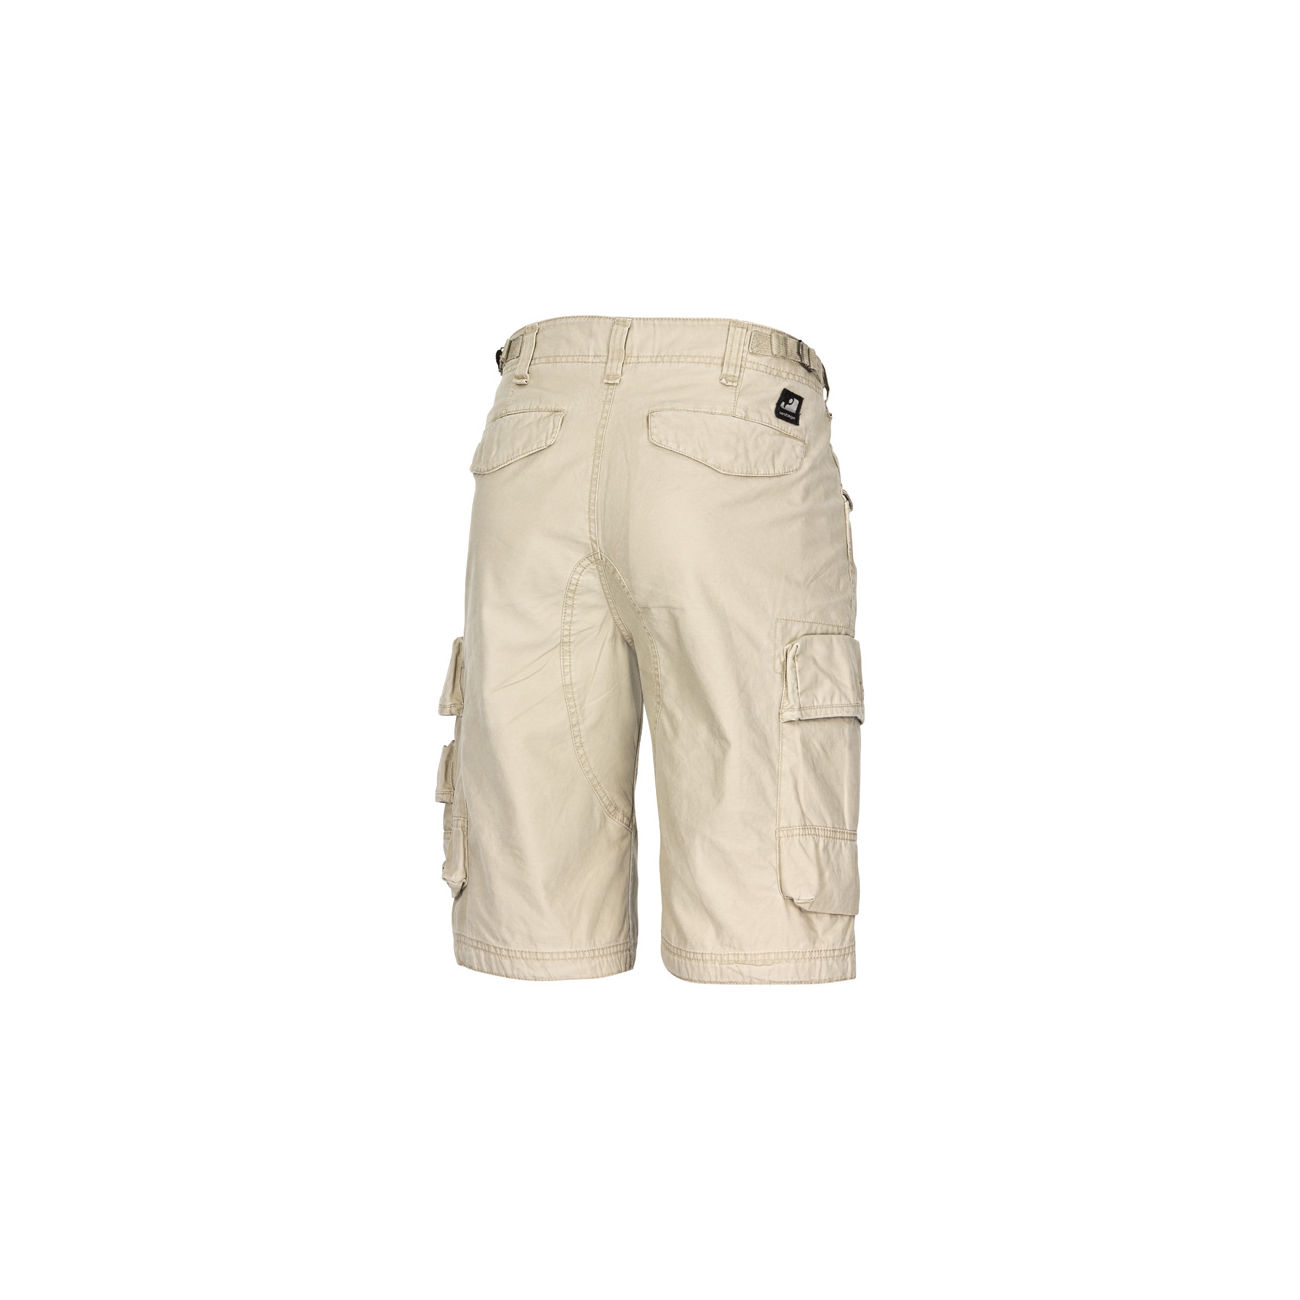 Vintage Industries Shore Short beige 1